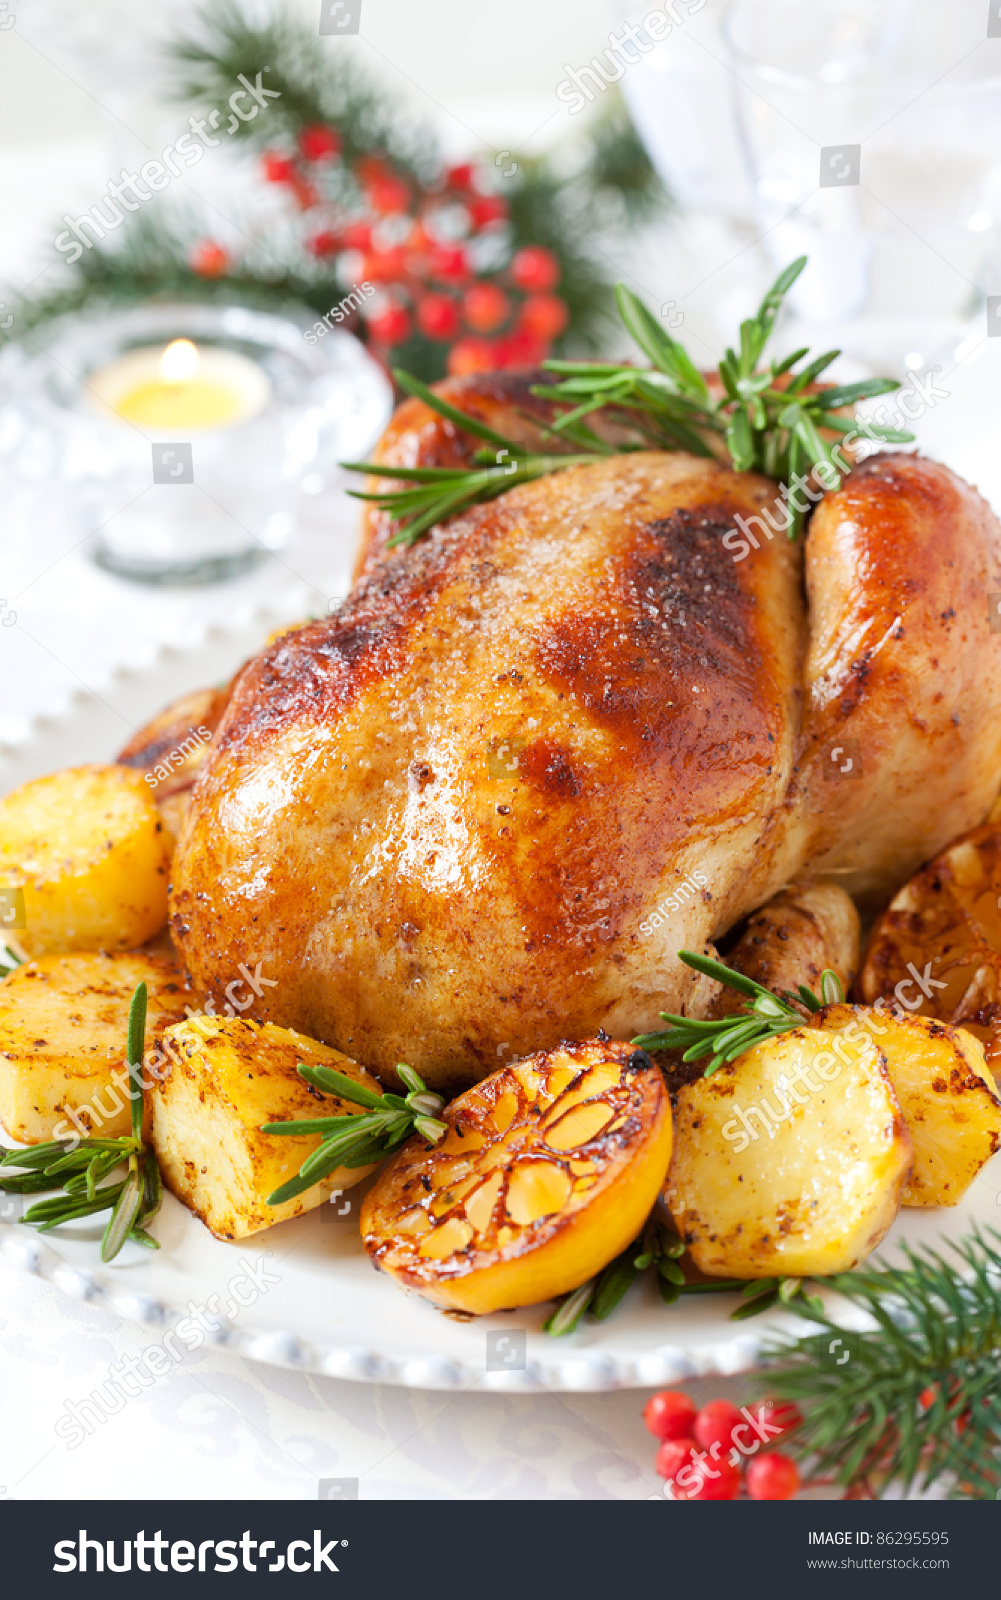 Roast Chicken With Potatoes,Lemons And Rosemary For Christmas ...